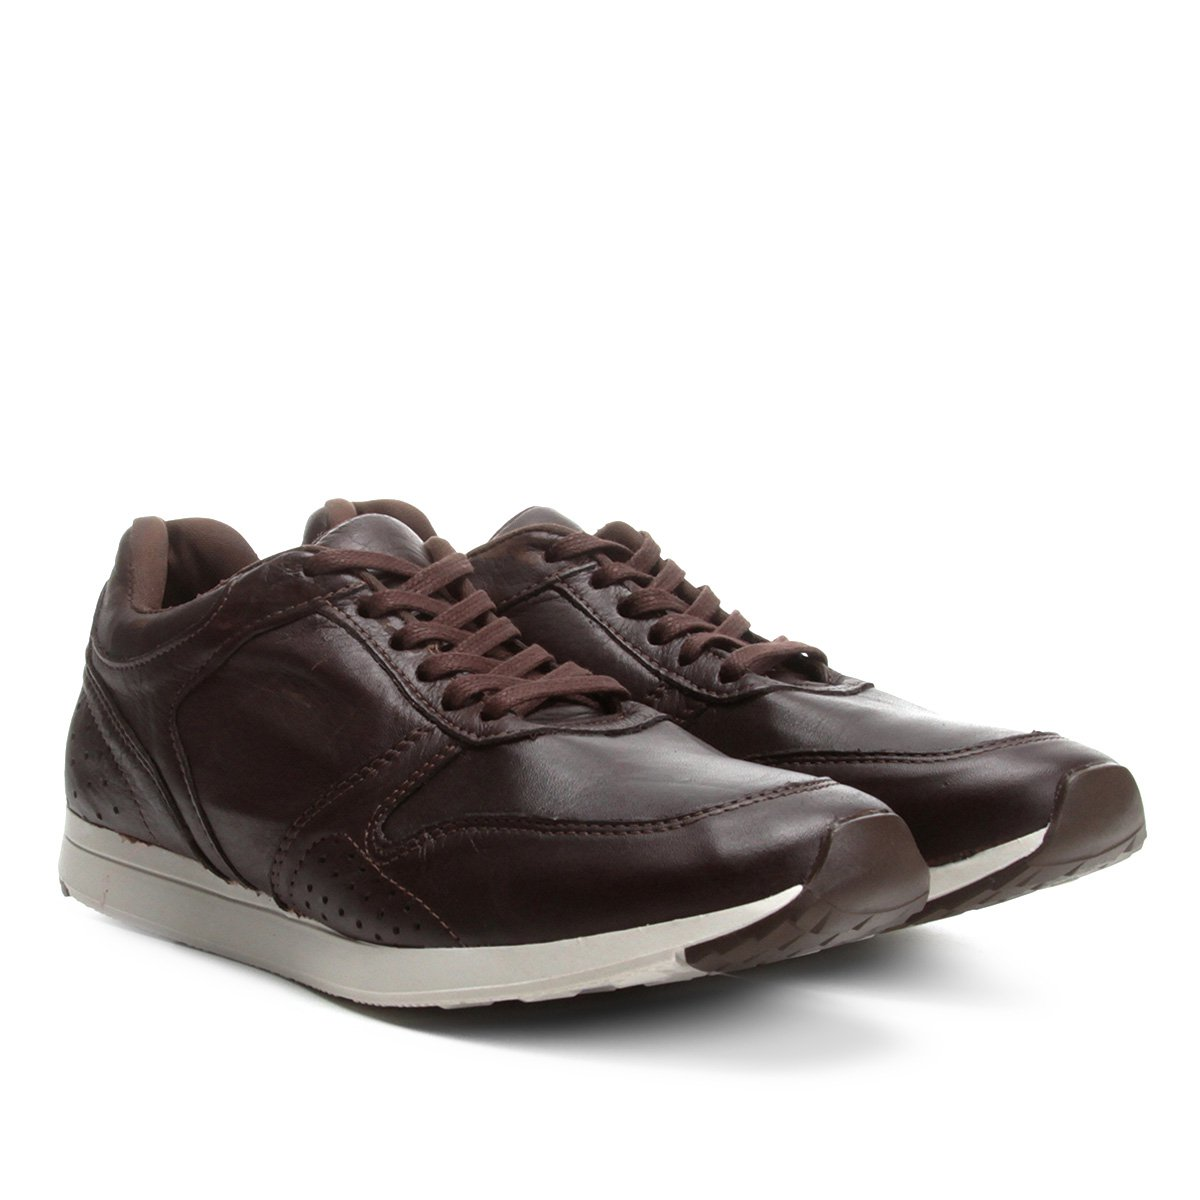 a676c97bf Tênis Couro Walkabout Jogging Masculino | Netshoes